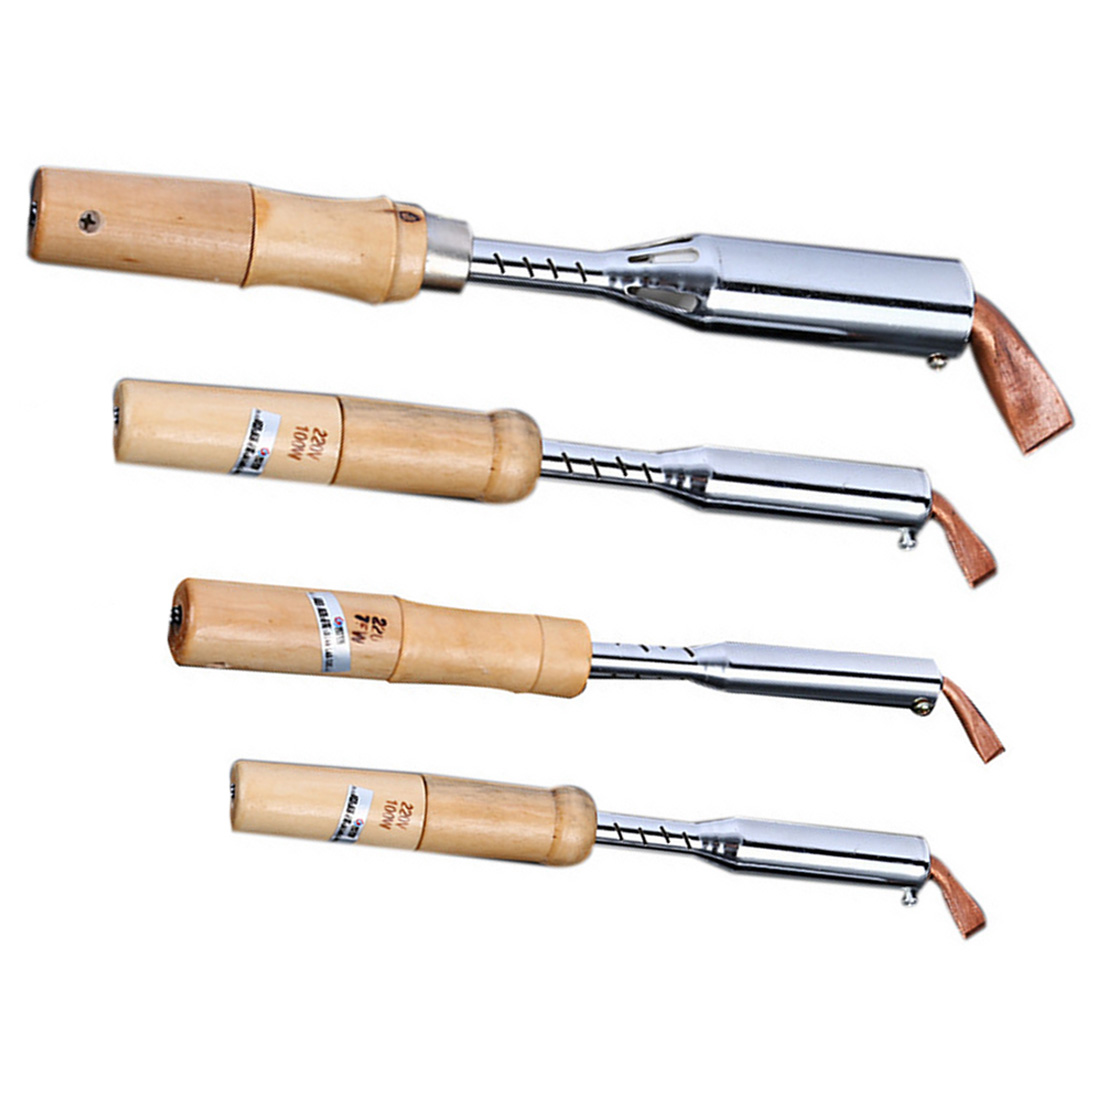 220V Heavy Duty Electric Soldering Iron 75W 100W 150W 200W High Power Soldering Iron Chisel Tip Wood Handle